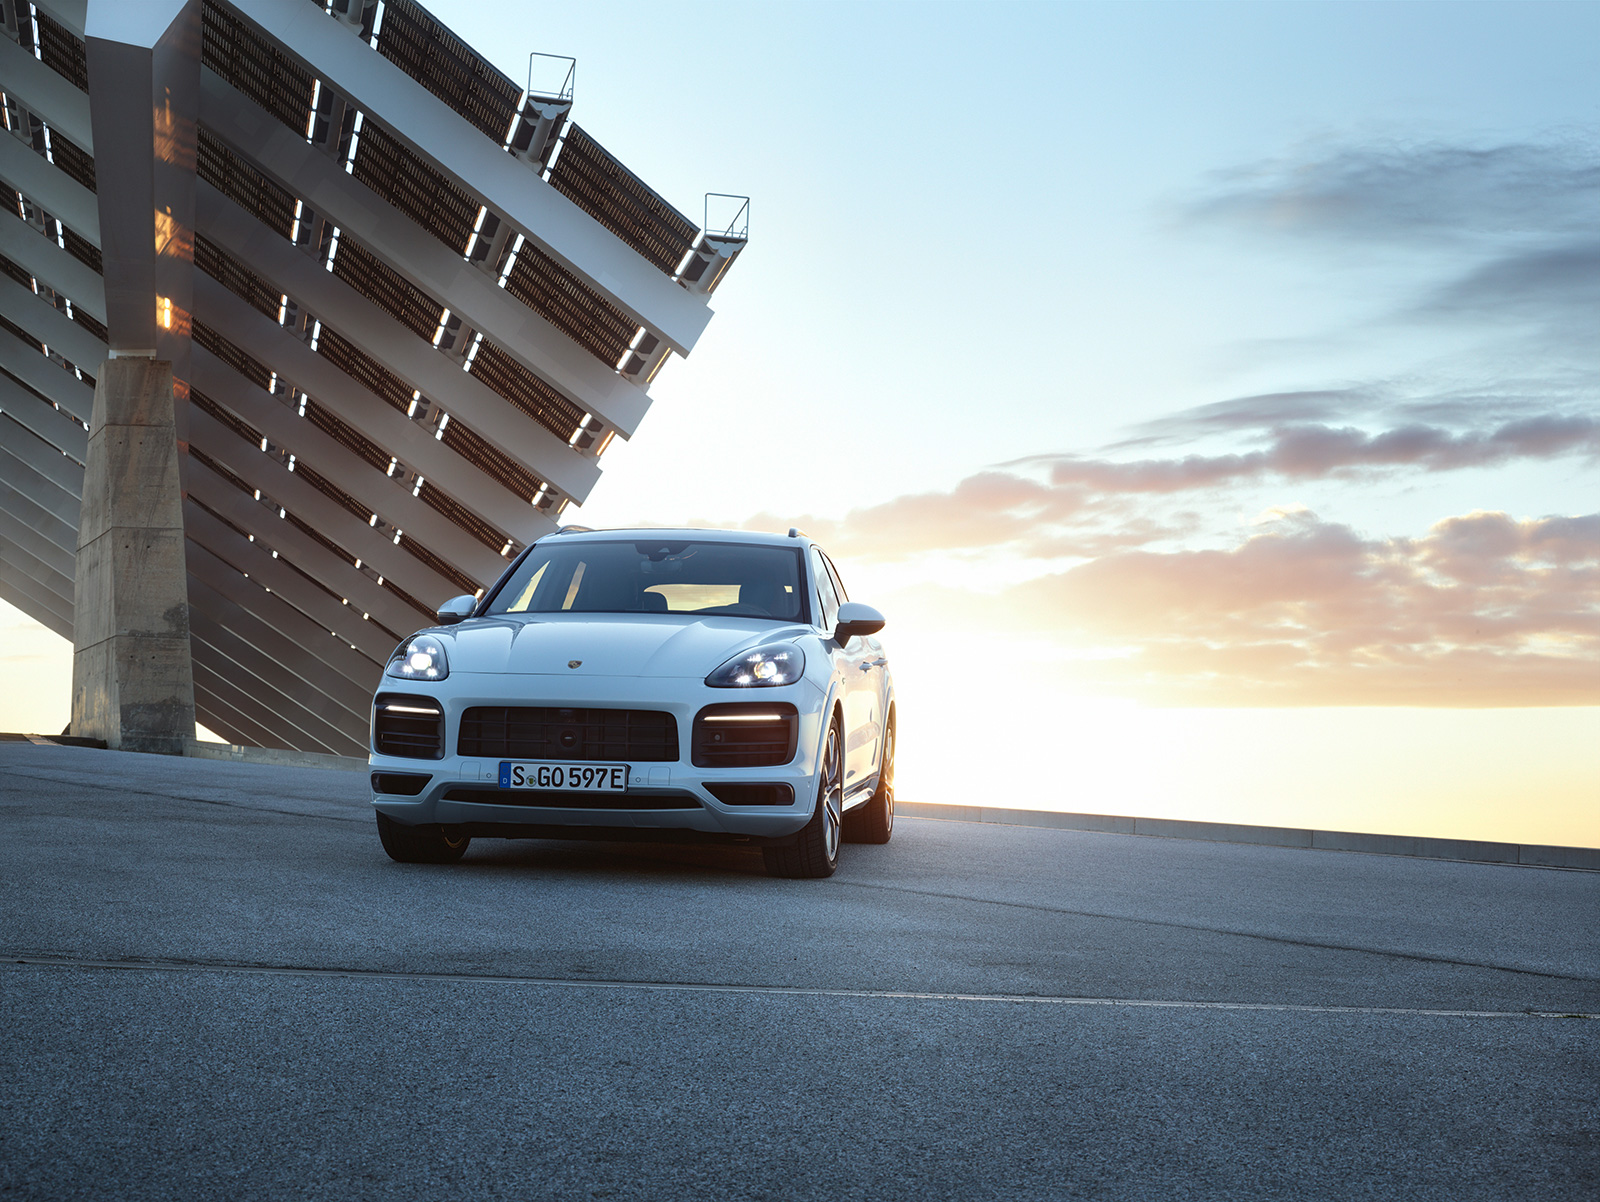 2019 Porsche Cayenne E-Hybrid Announced with 455 HP